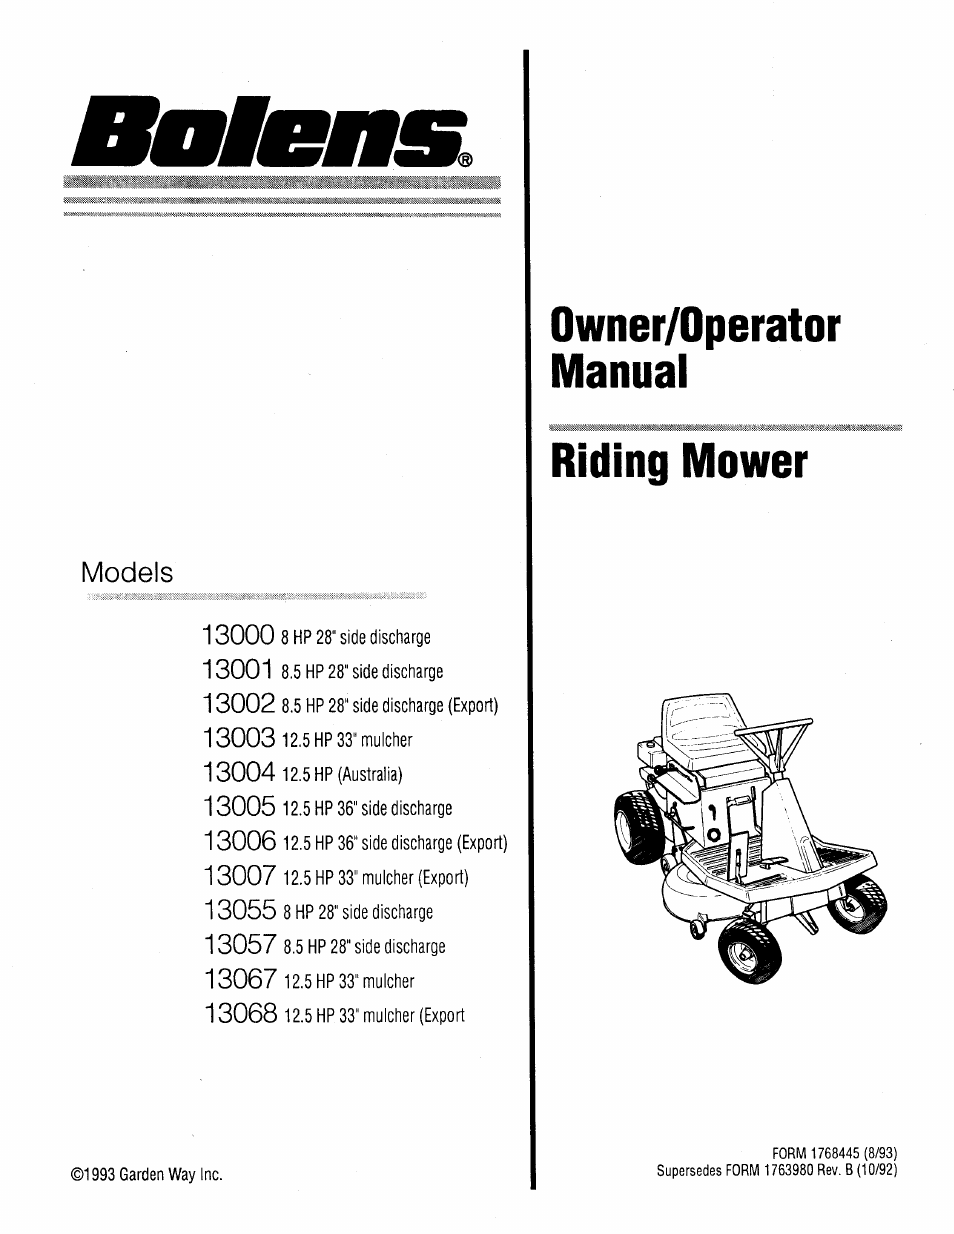 Bolens 13067 User Manual | 36 pages | Also for: 13002, 13006, 13007, 13005,  13004, 13003, 13057, 13000, 13068, 13001, 13055